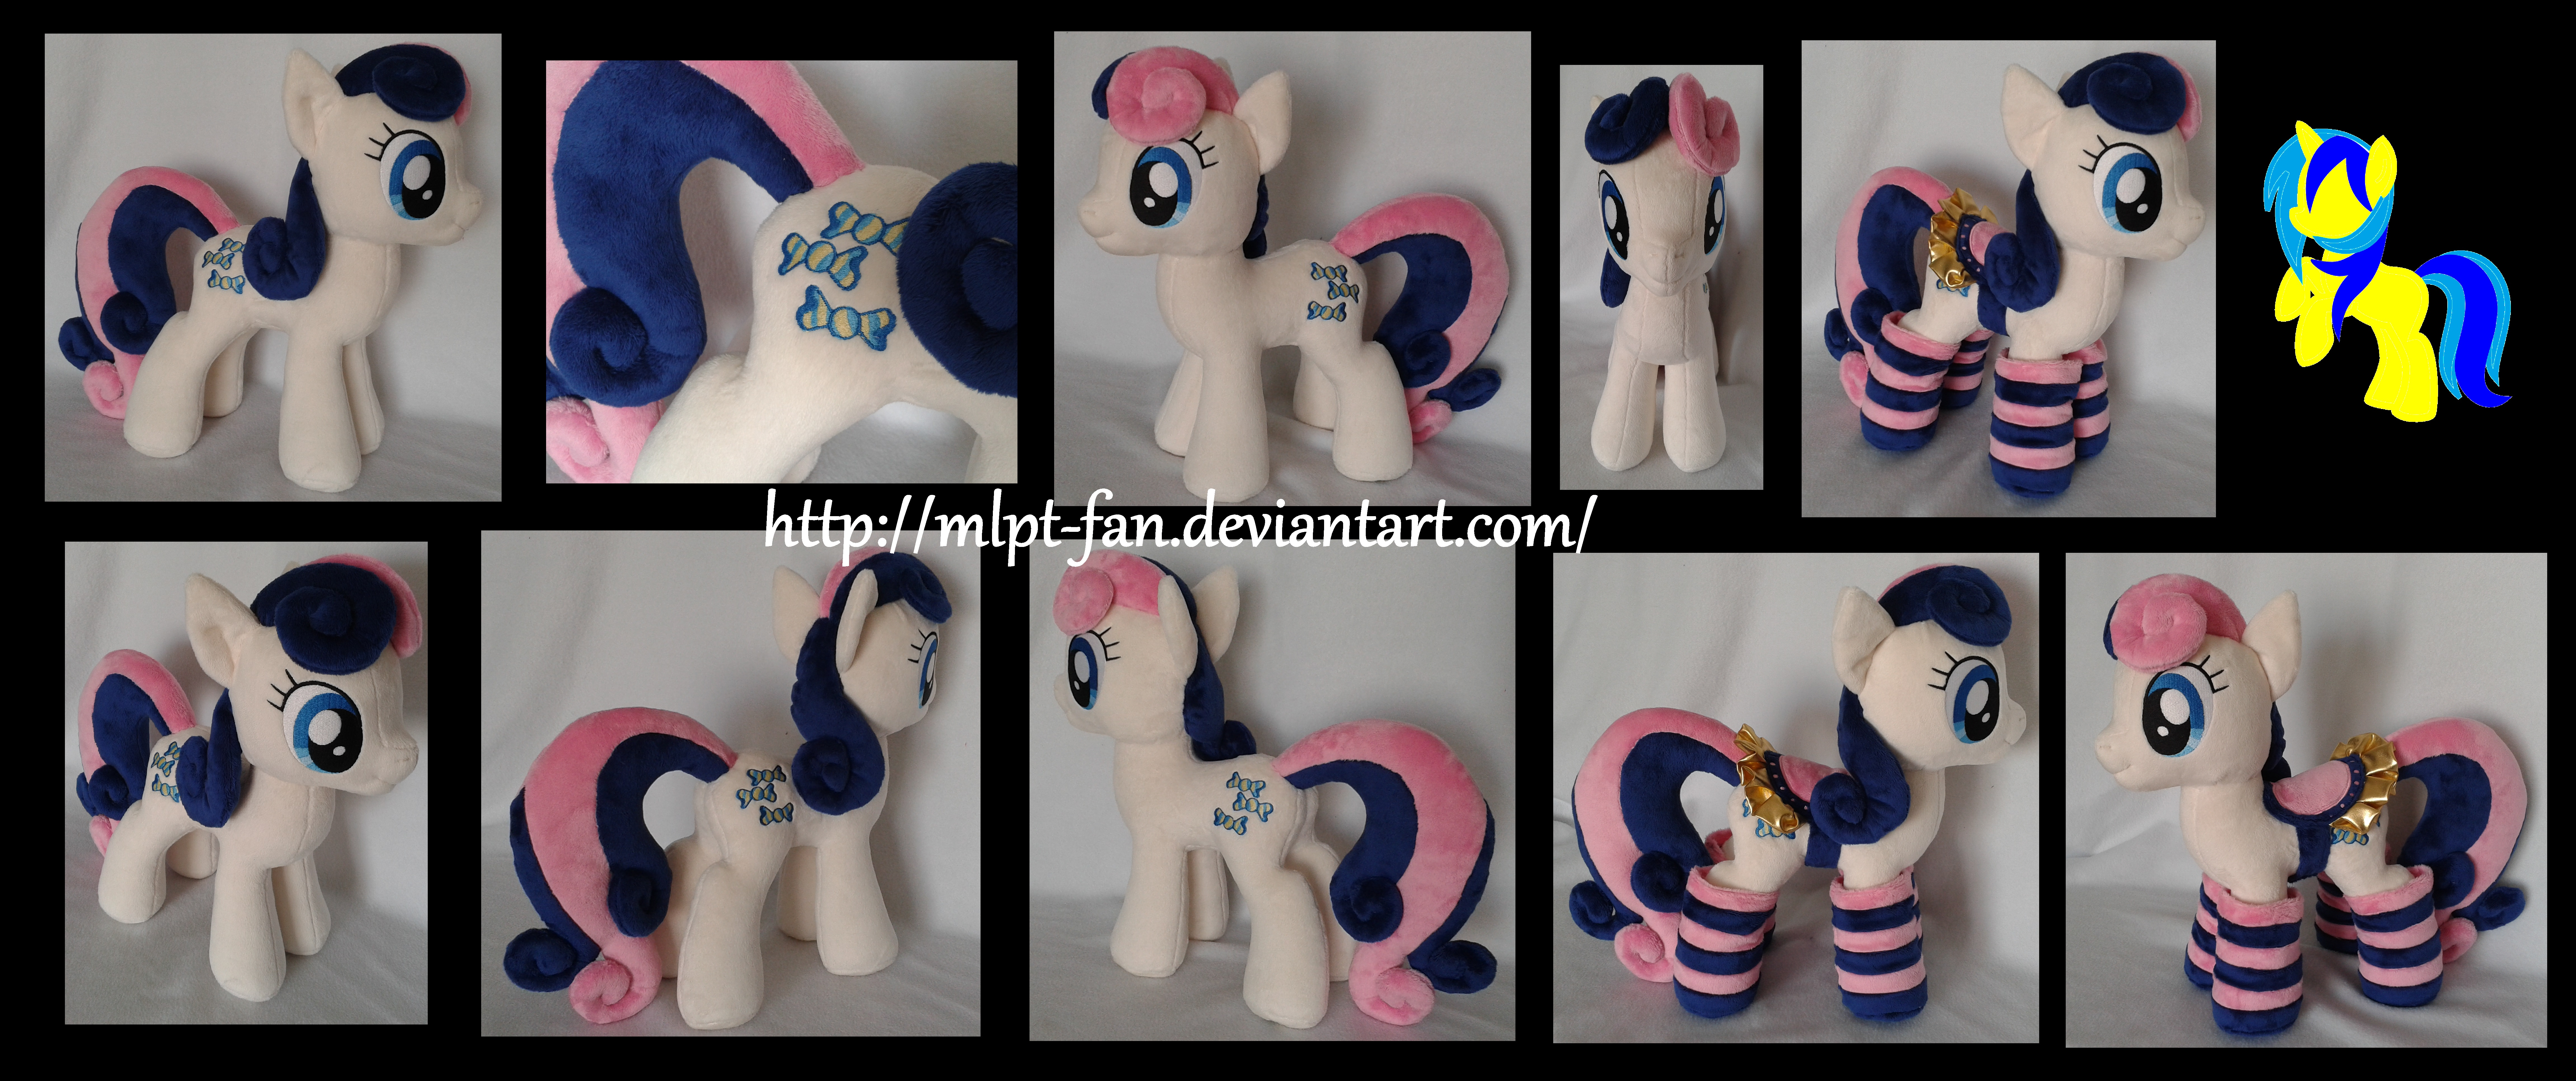 Bon Bon with socks and saddle by MLPT-fan